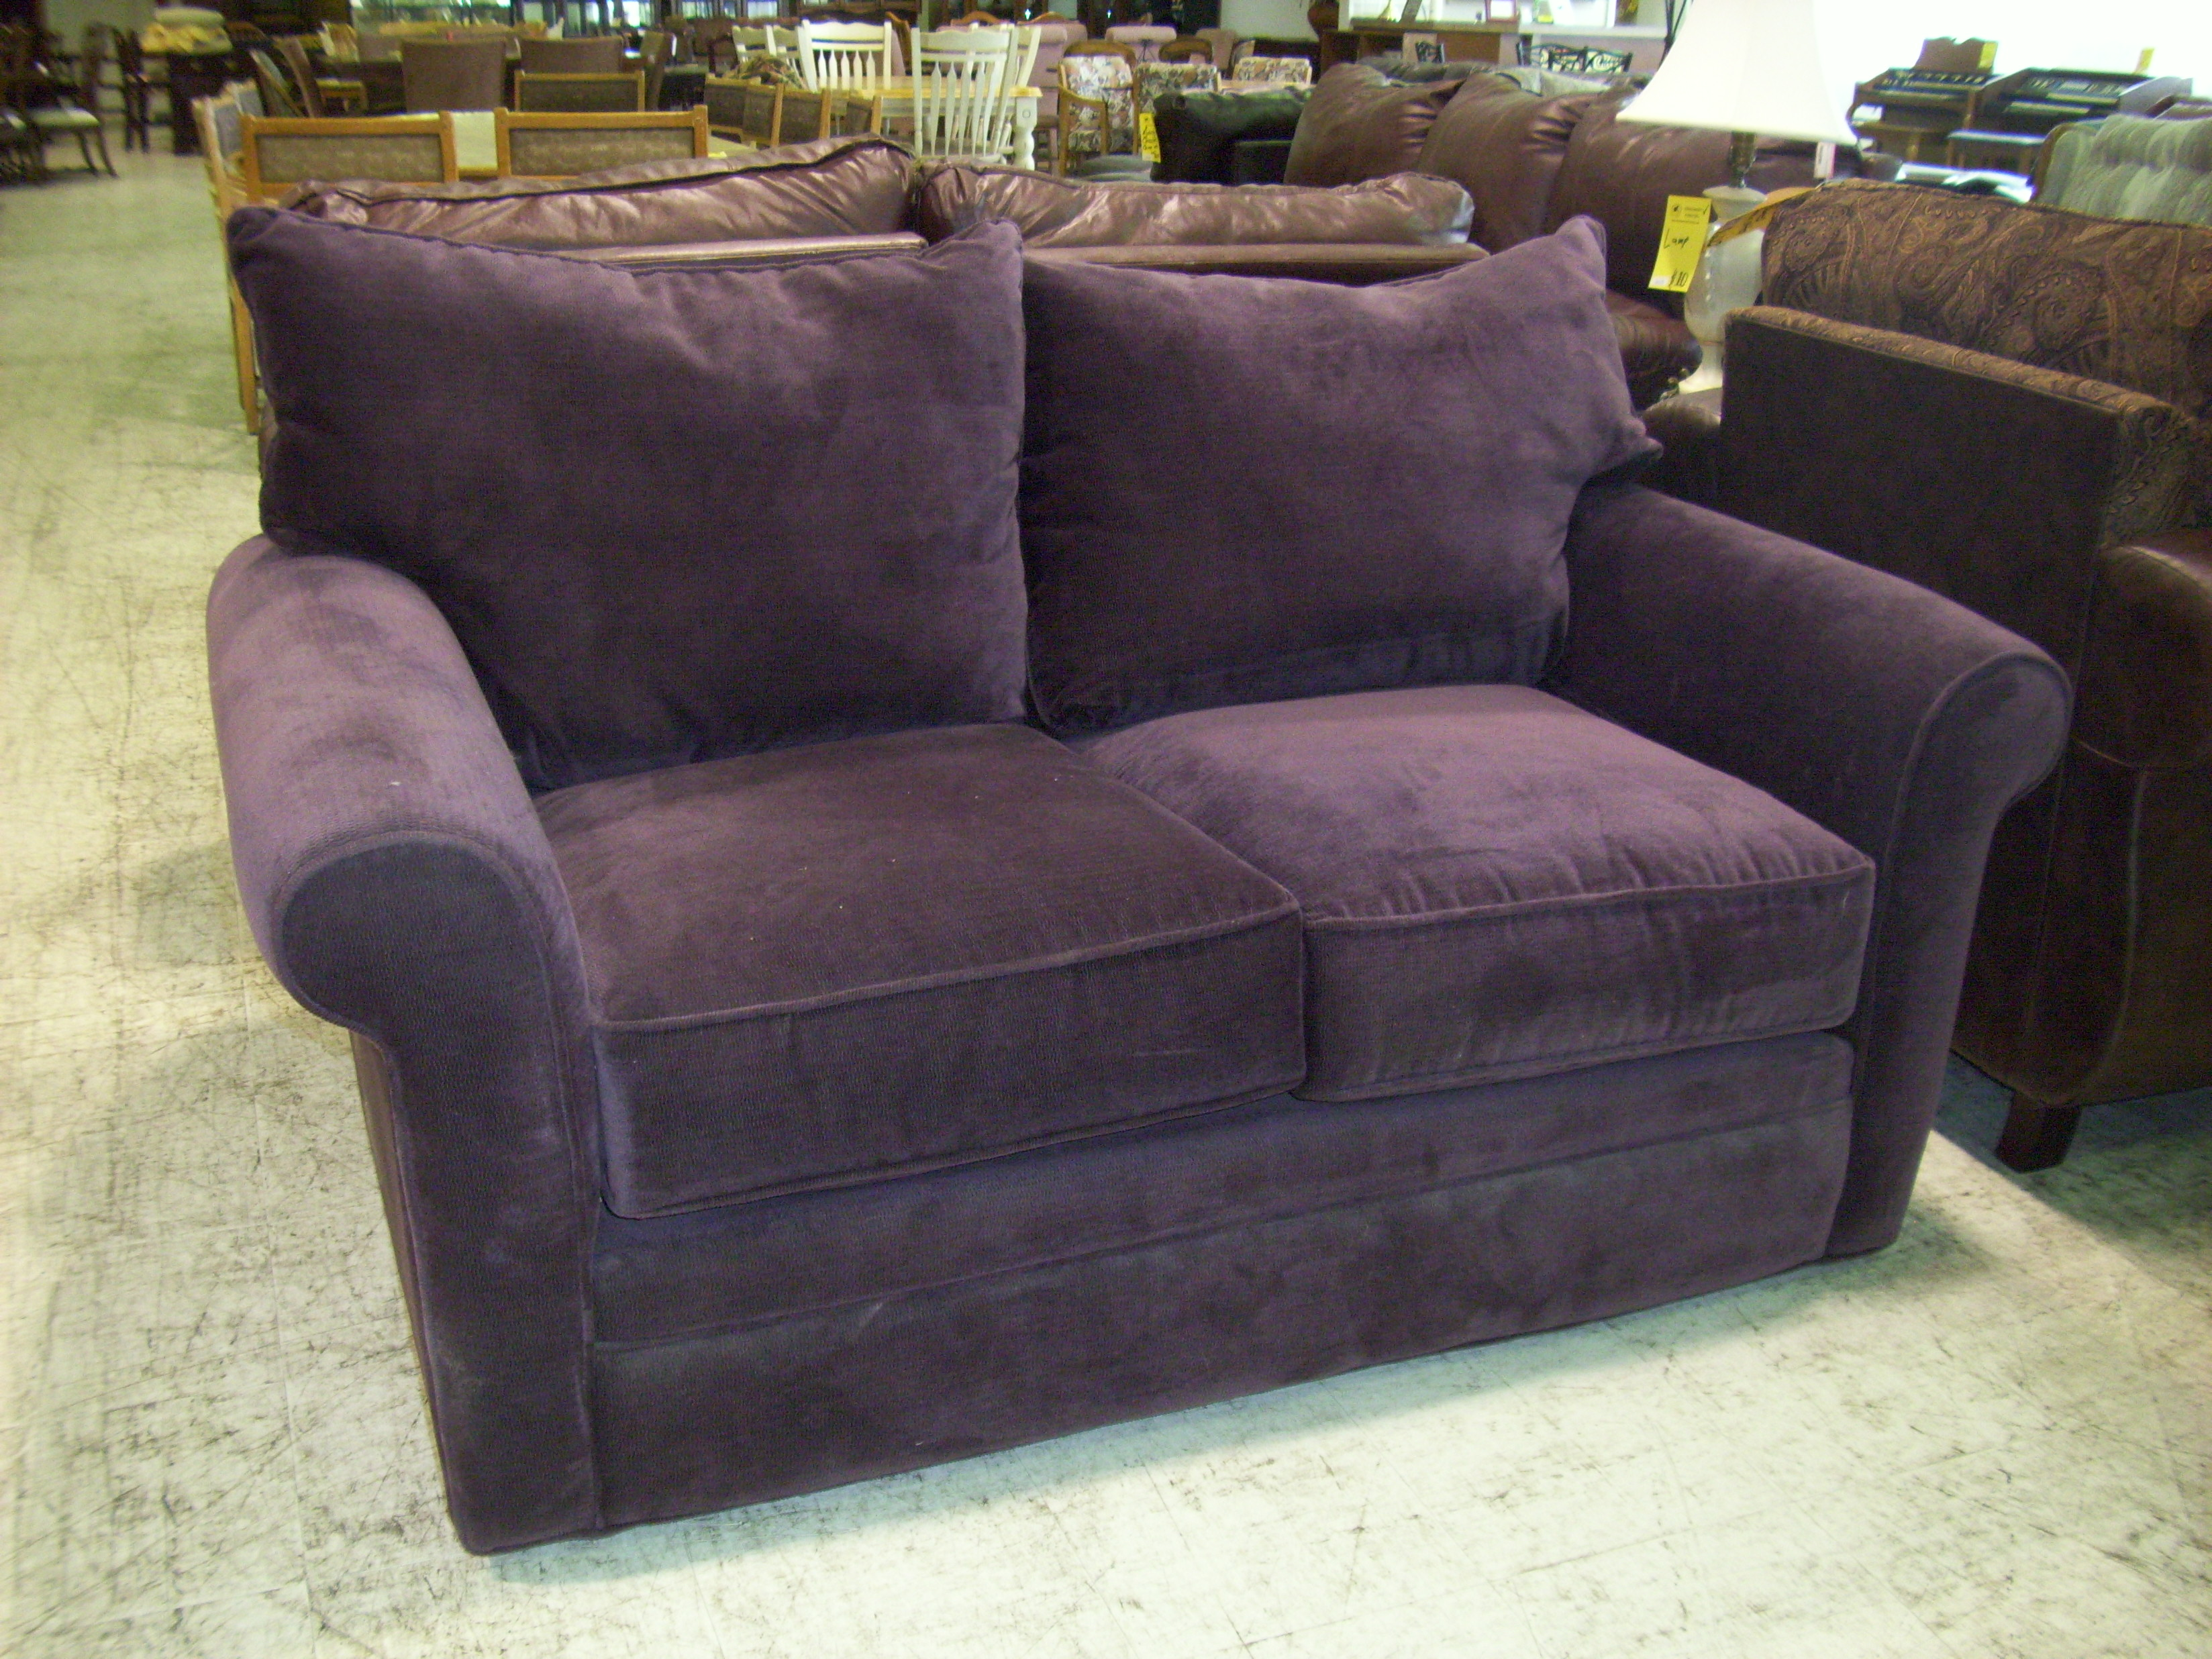 Sofa Set Sale In Kannur Plum Colored Sofas Home The Honoroak